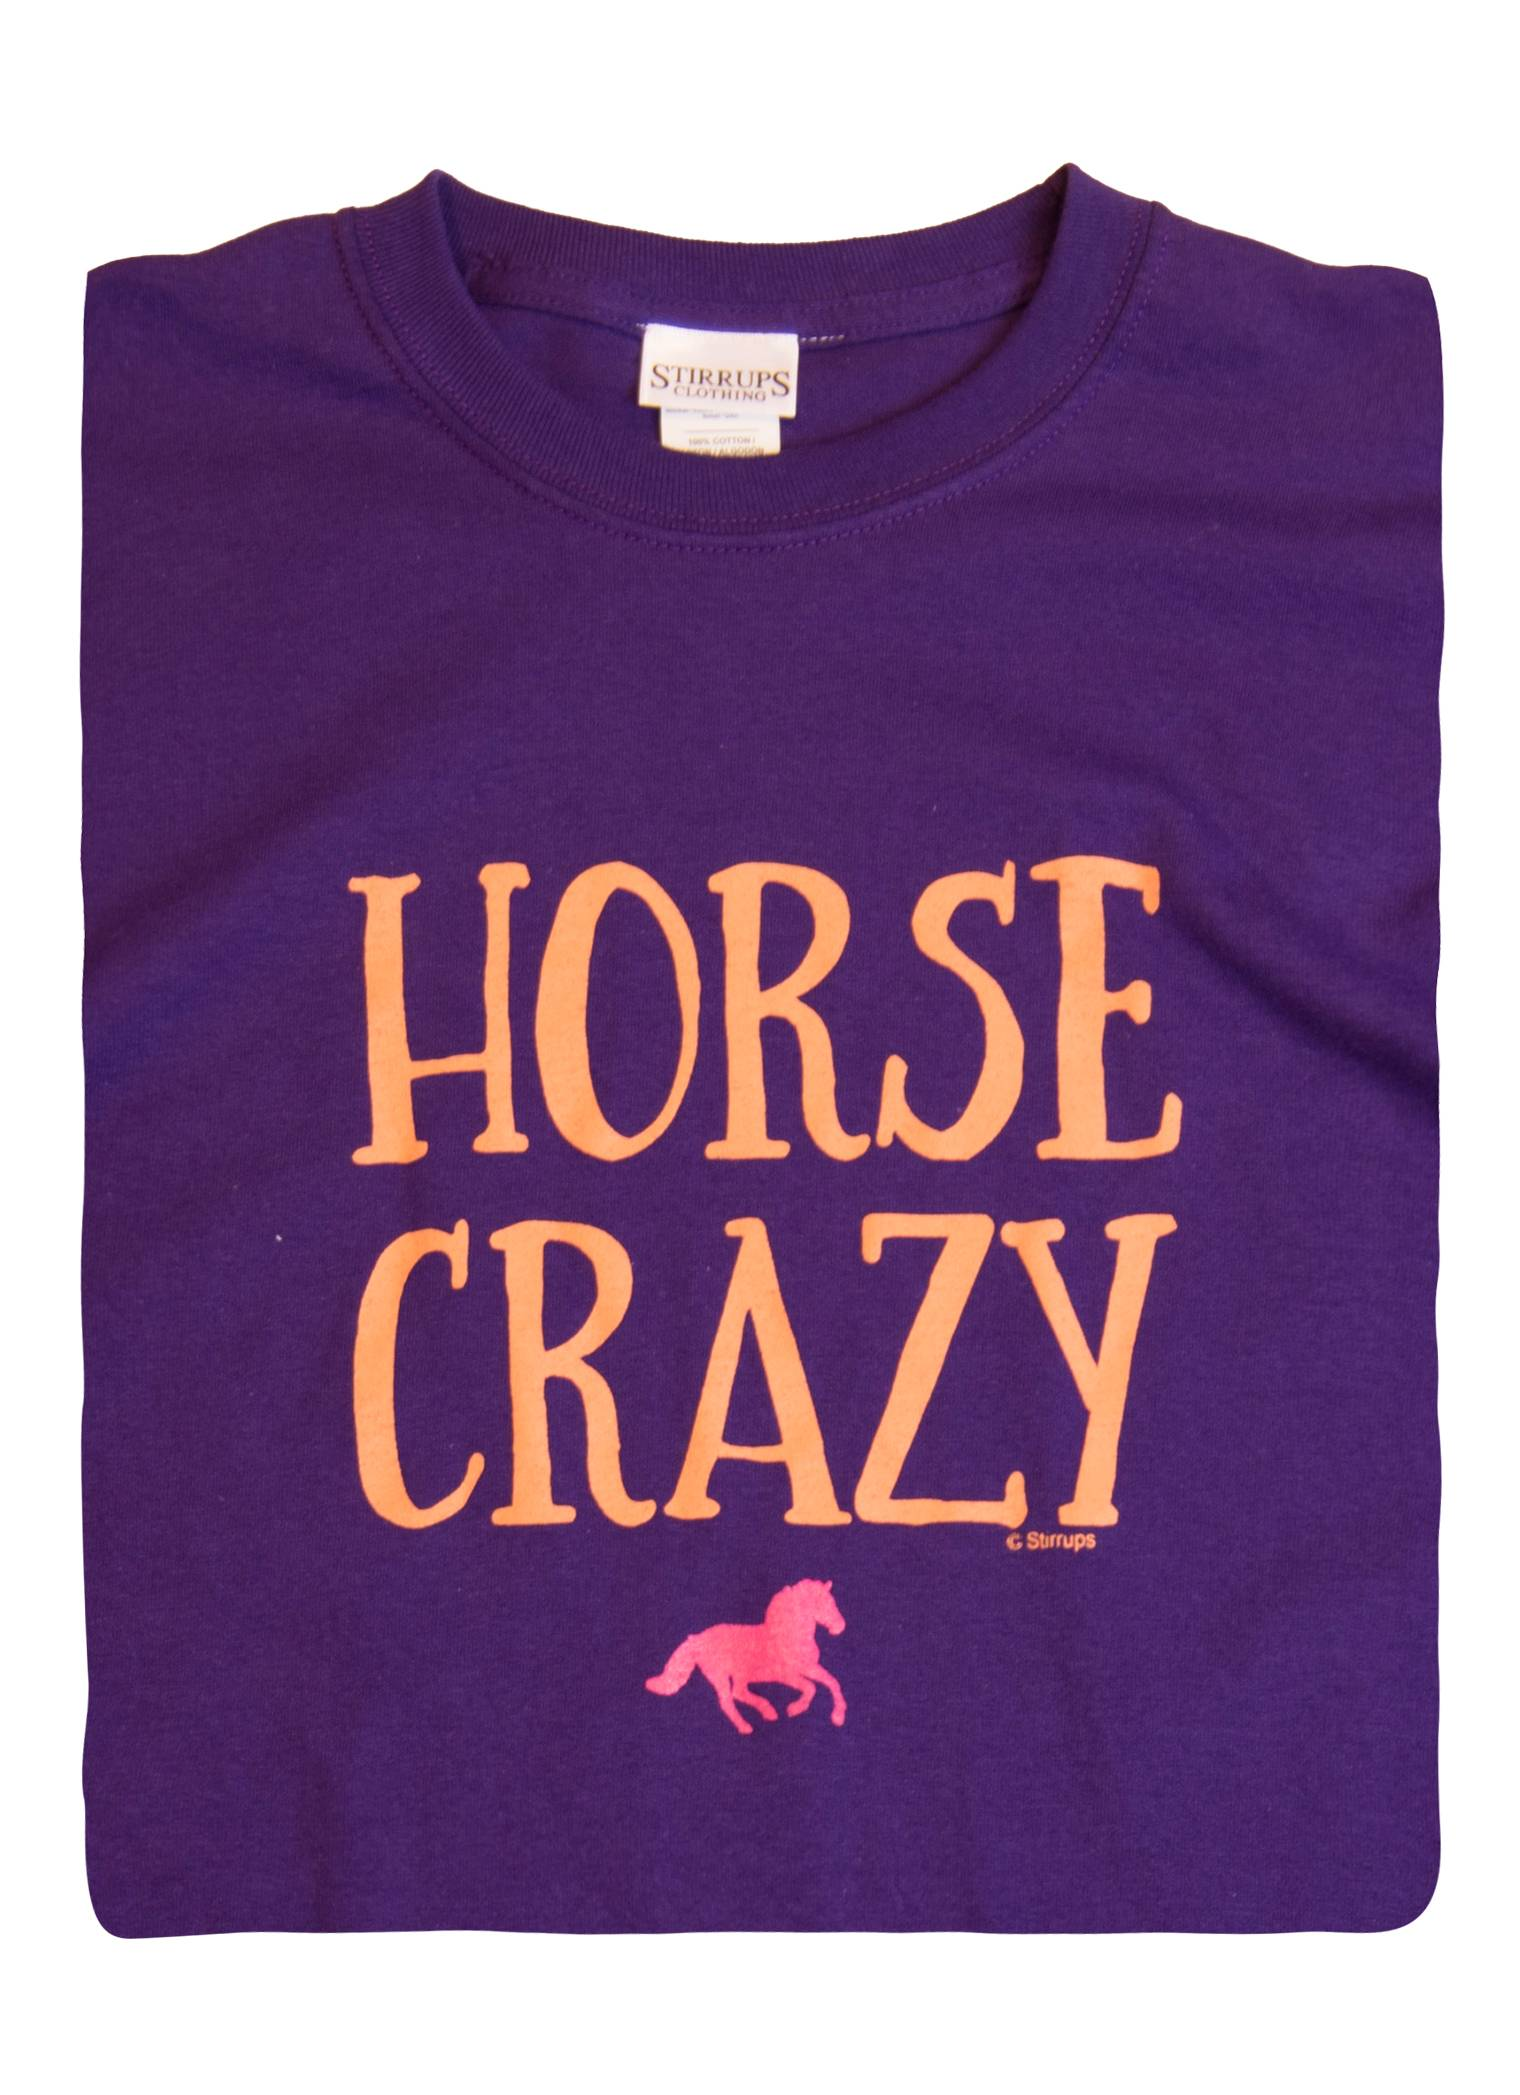 Stirrups Horse Crazy Cotton Long Sleeve Crewneck Tee - Ladies